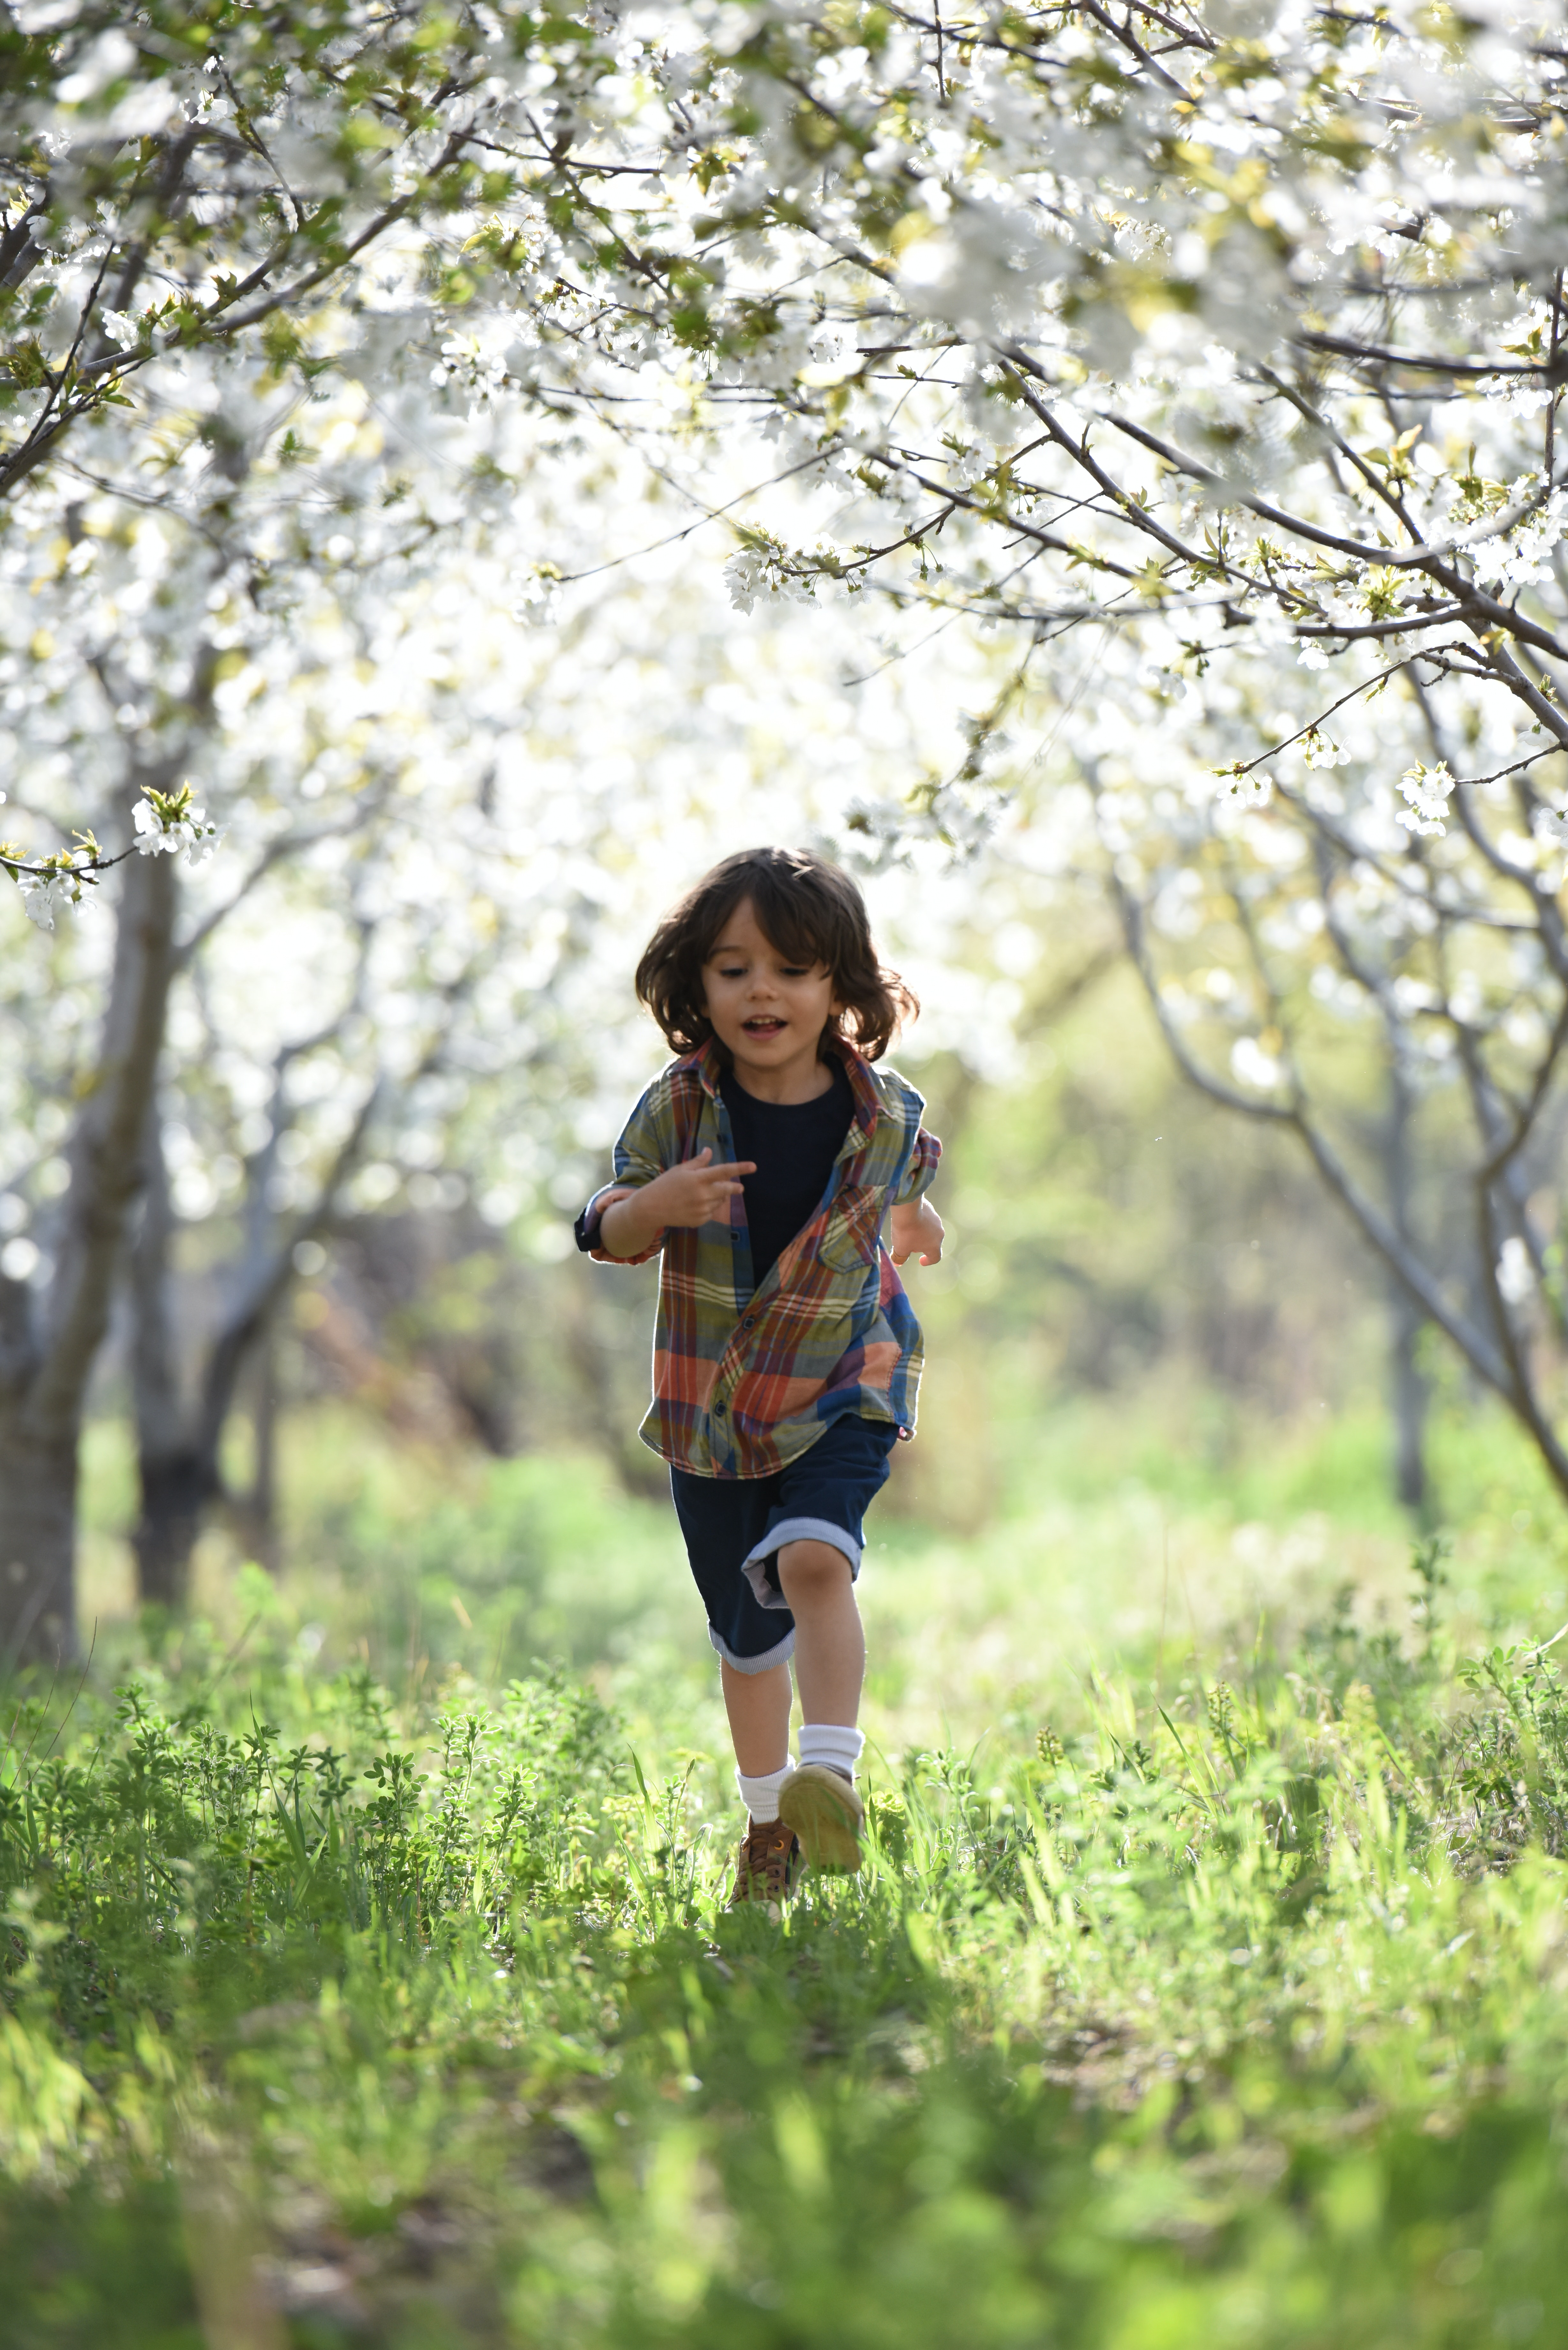 Boy running through field lined by trees